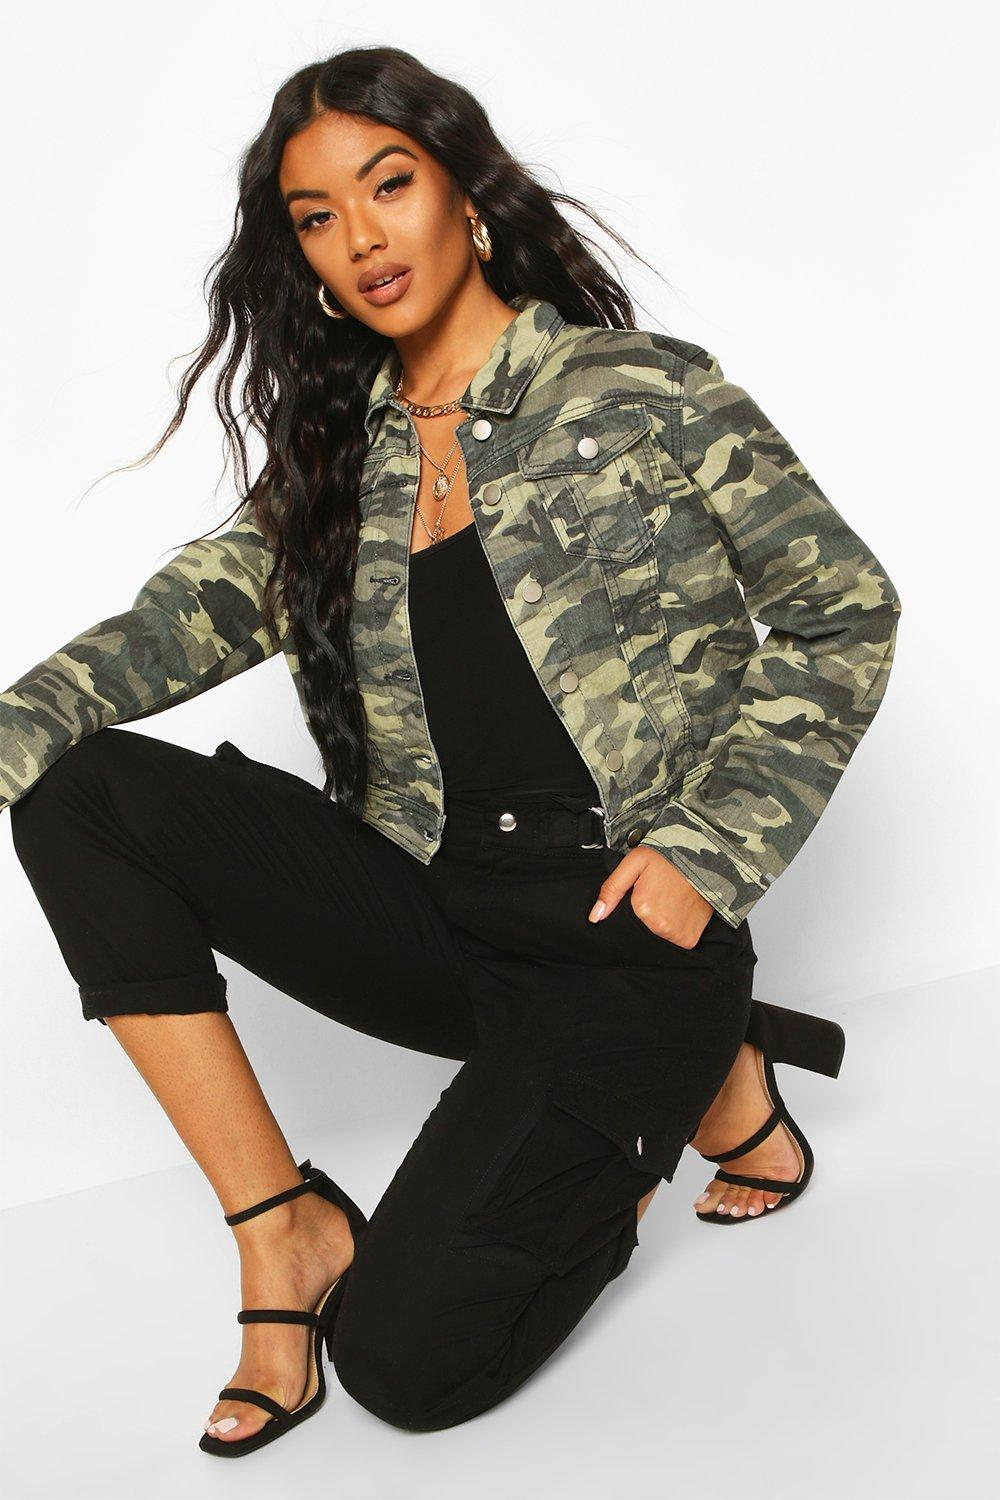 Womens camouflage jackets